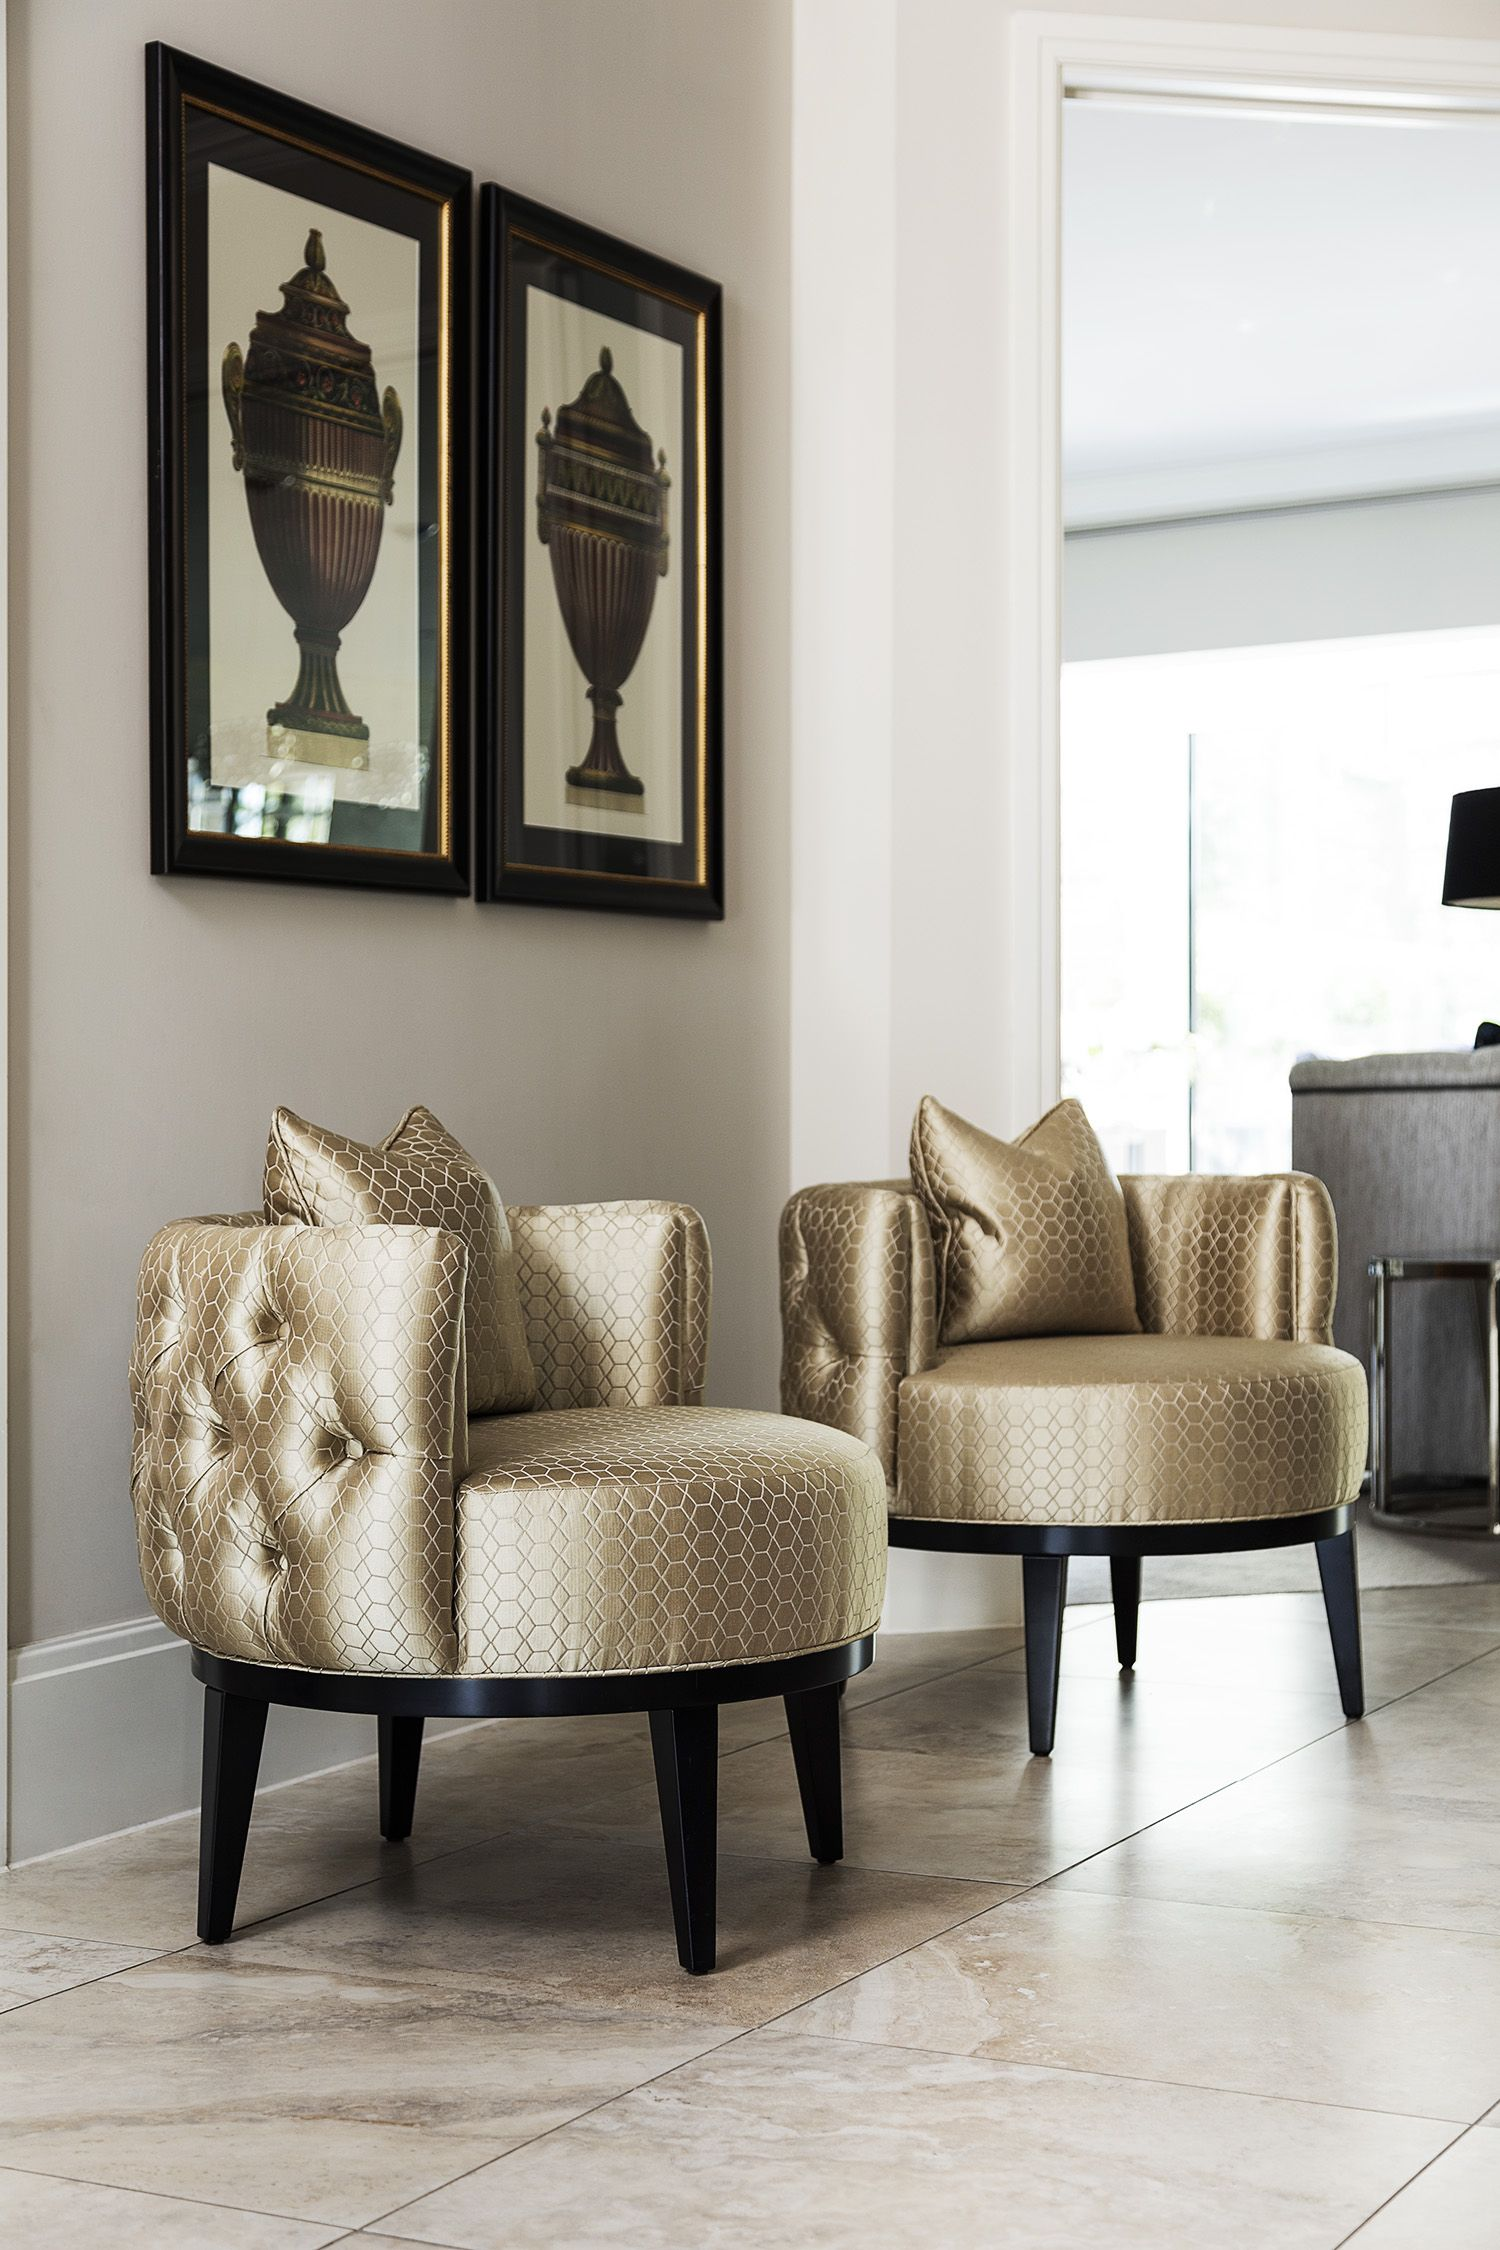 Oscar Occasional Chair An Inspirational Luxury Accent Chair That Makes An Impact In Thi Luxury Home Furniture Home Decor Furniture White Furniture Living Room